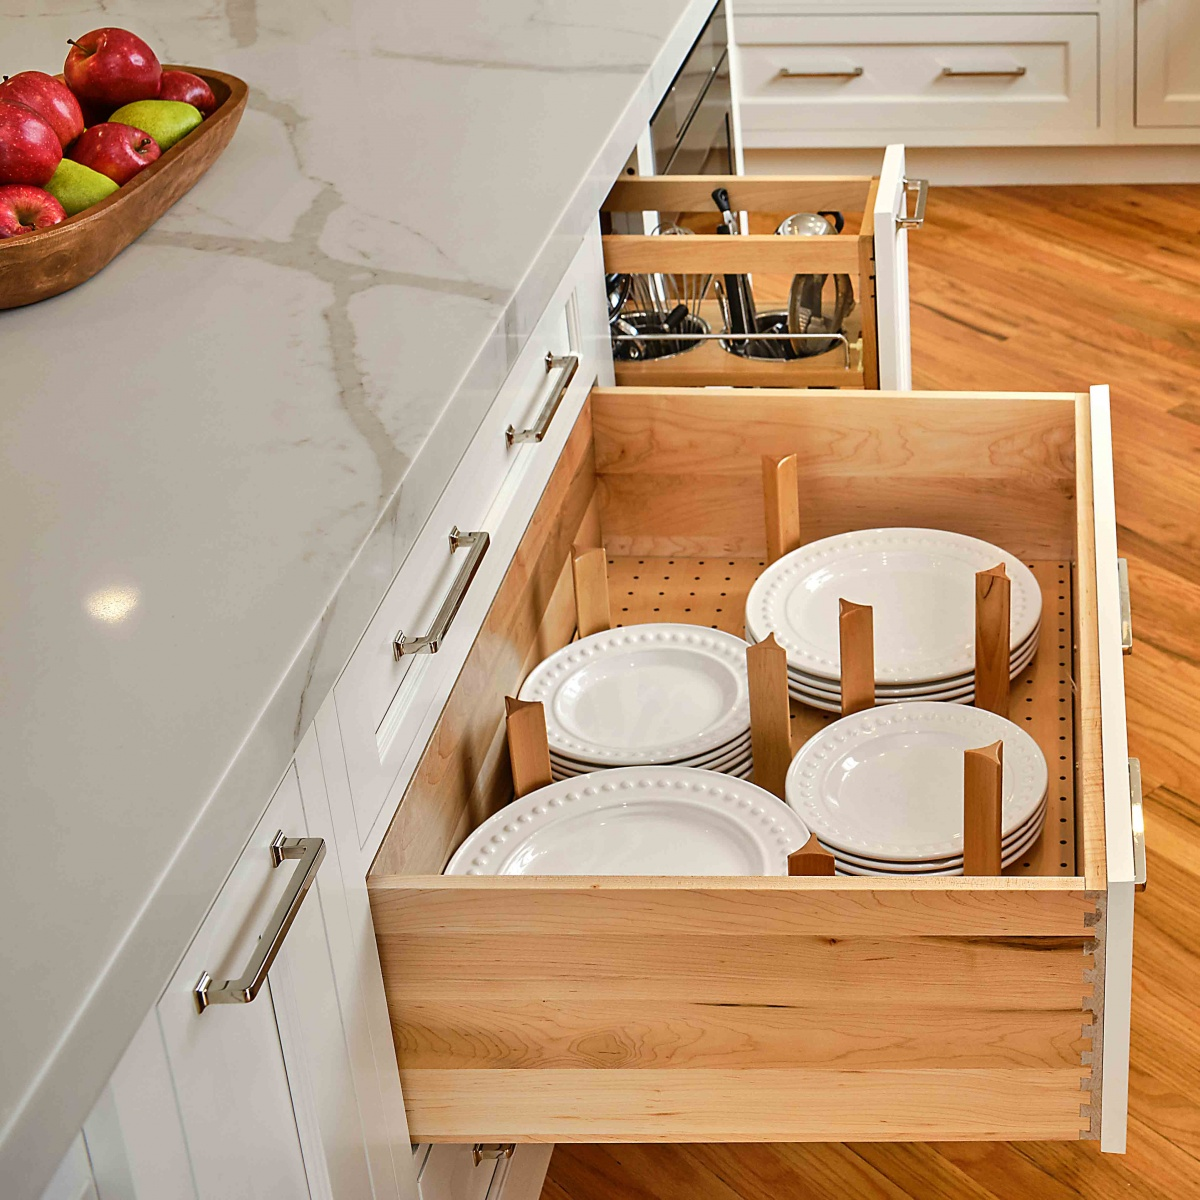 Simple Tips For Kitchen Organization The Kitchen Company